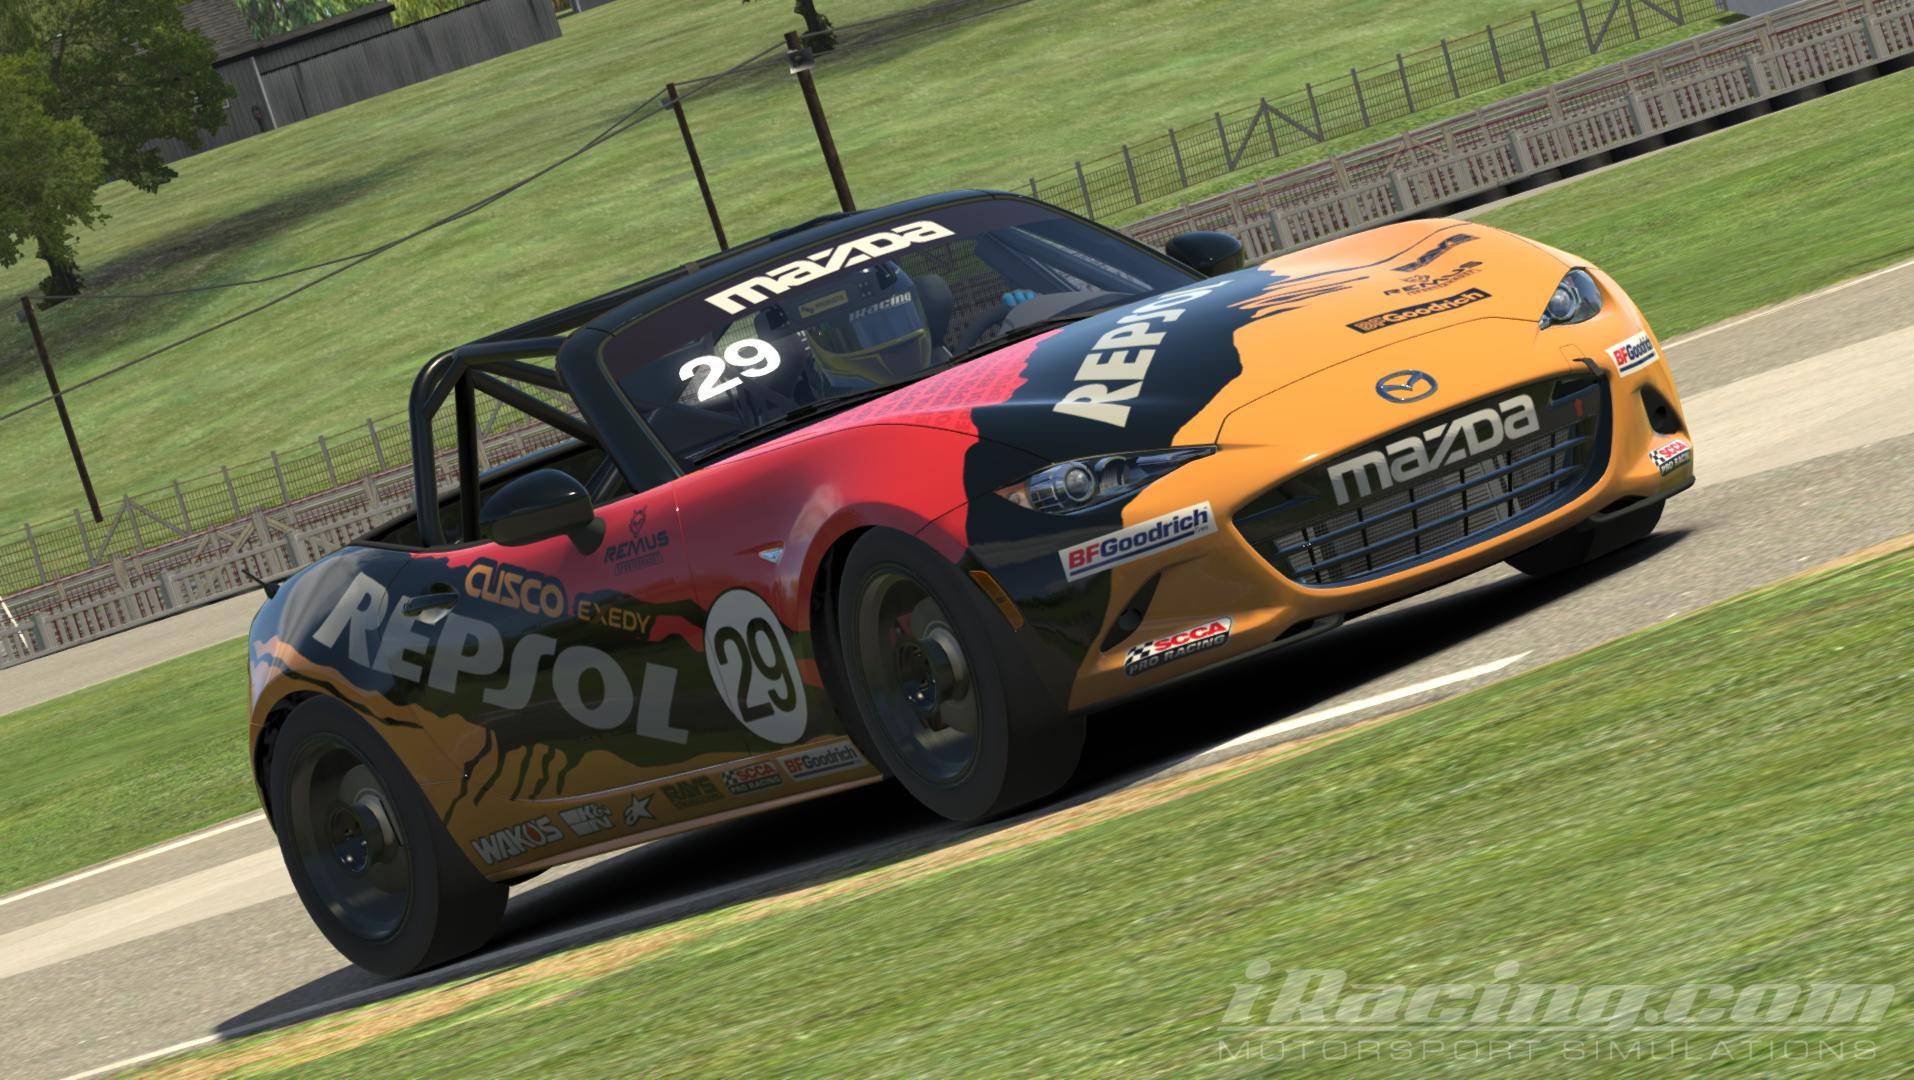 Preview of Global Mazda MX5 Repsol by Christian Kistner